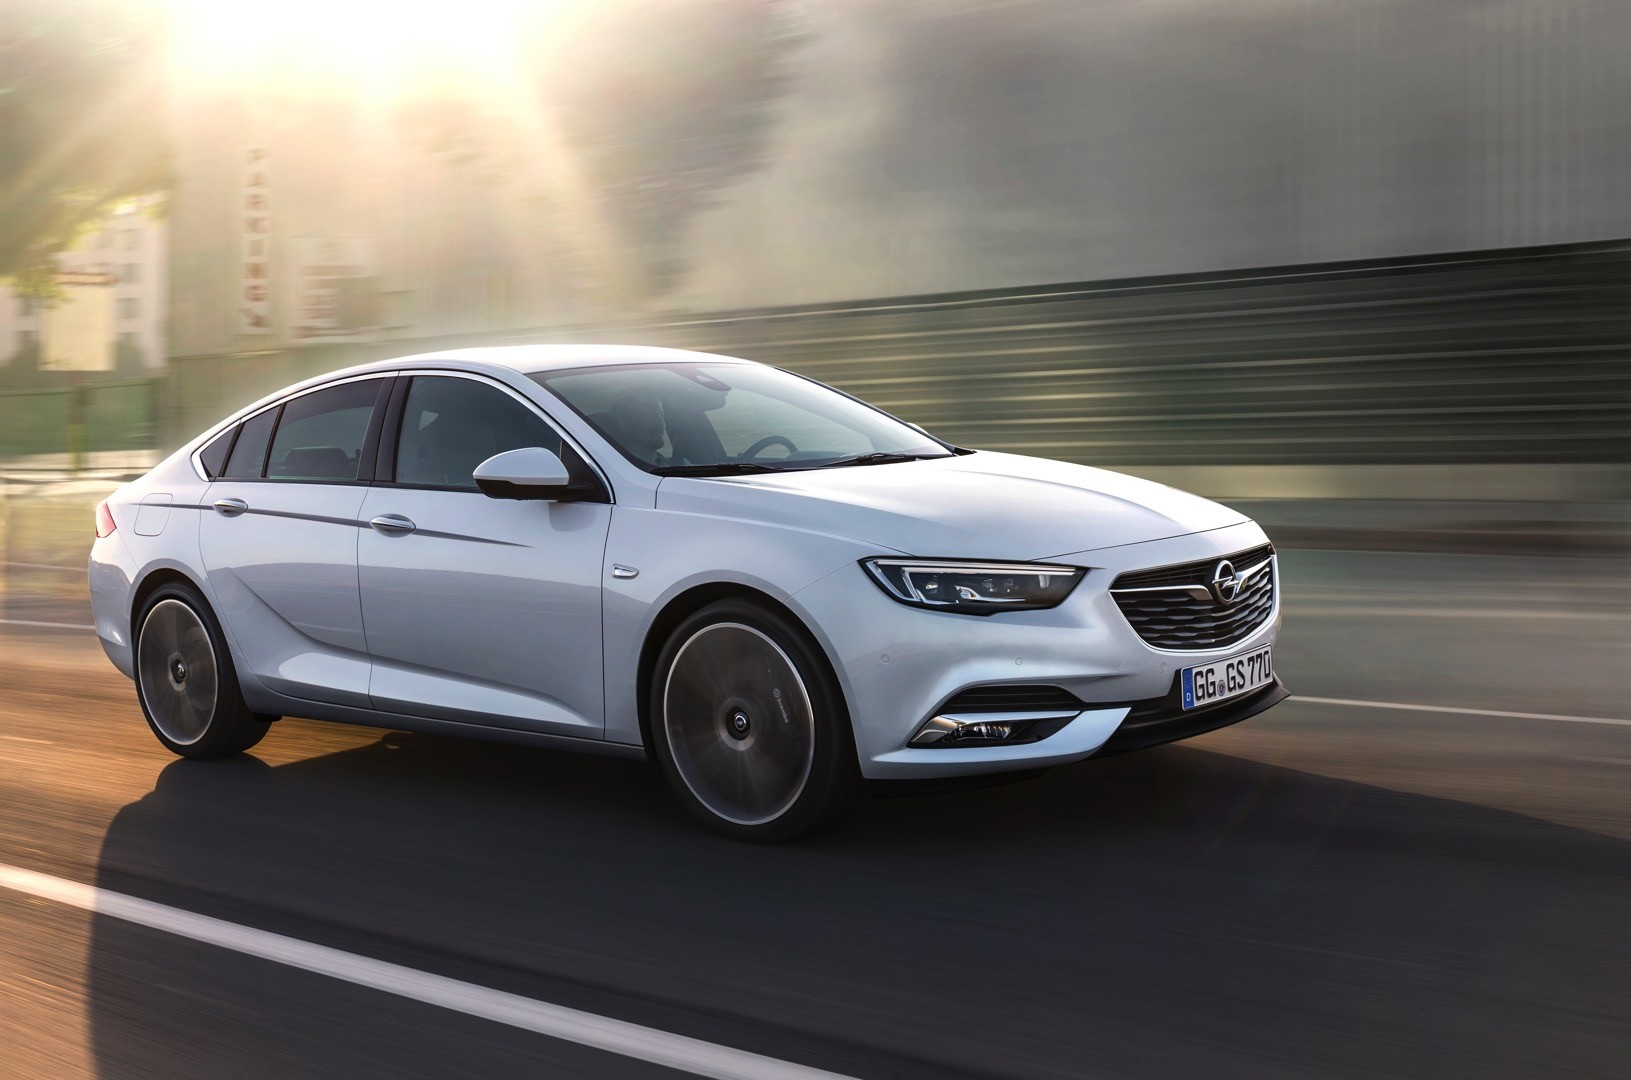 Opel Insignia Price Starts From Eur For The Sedan